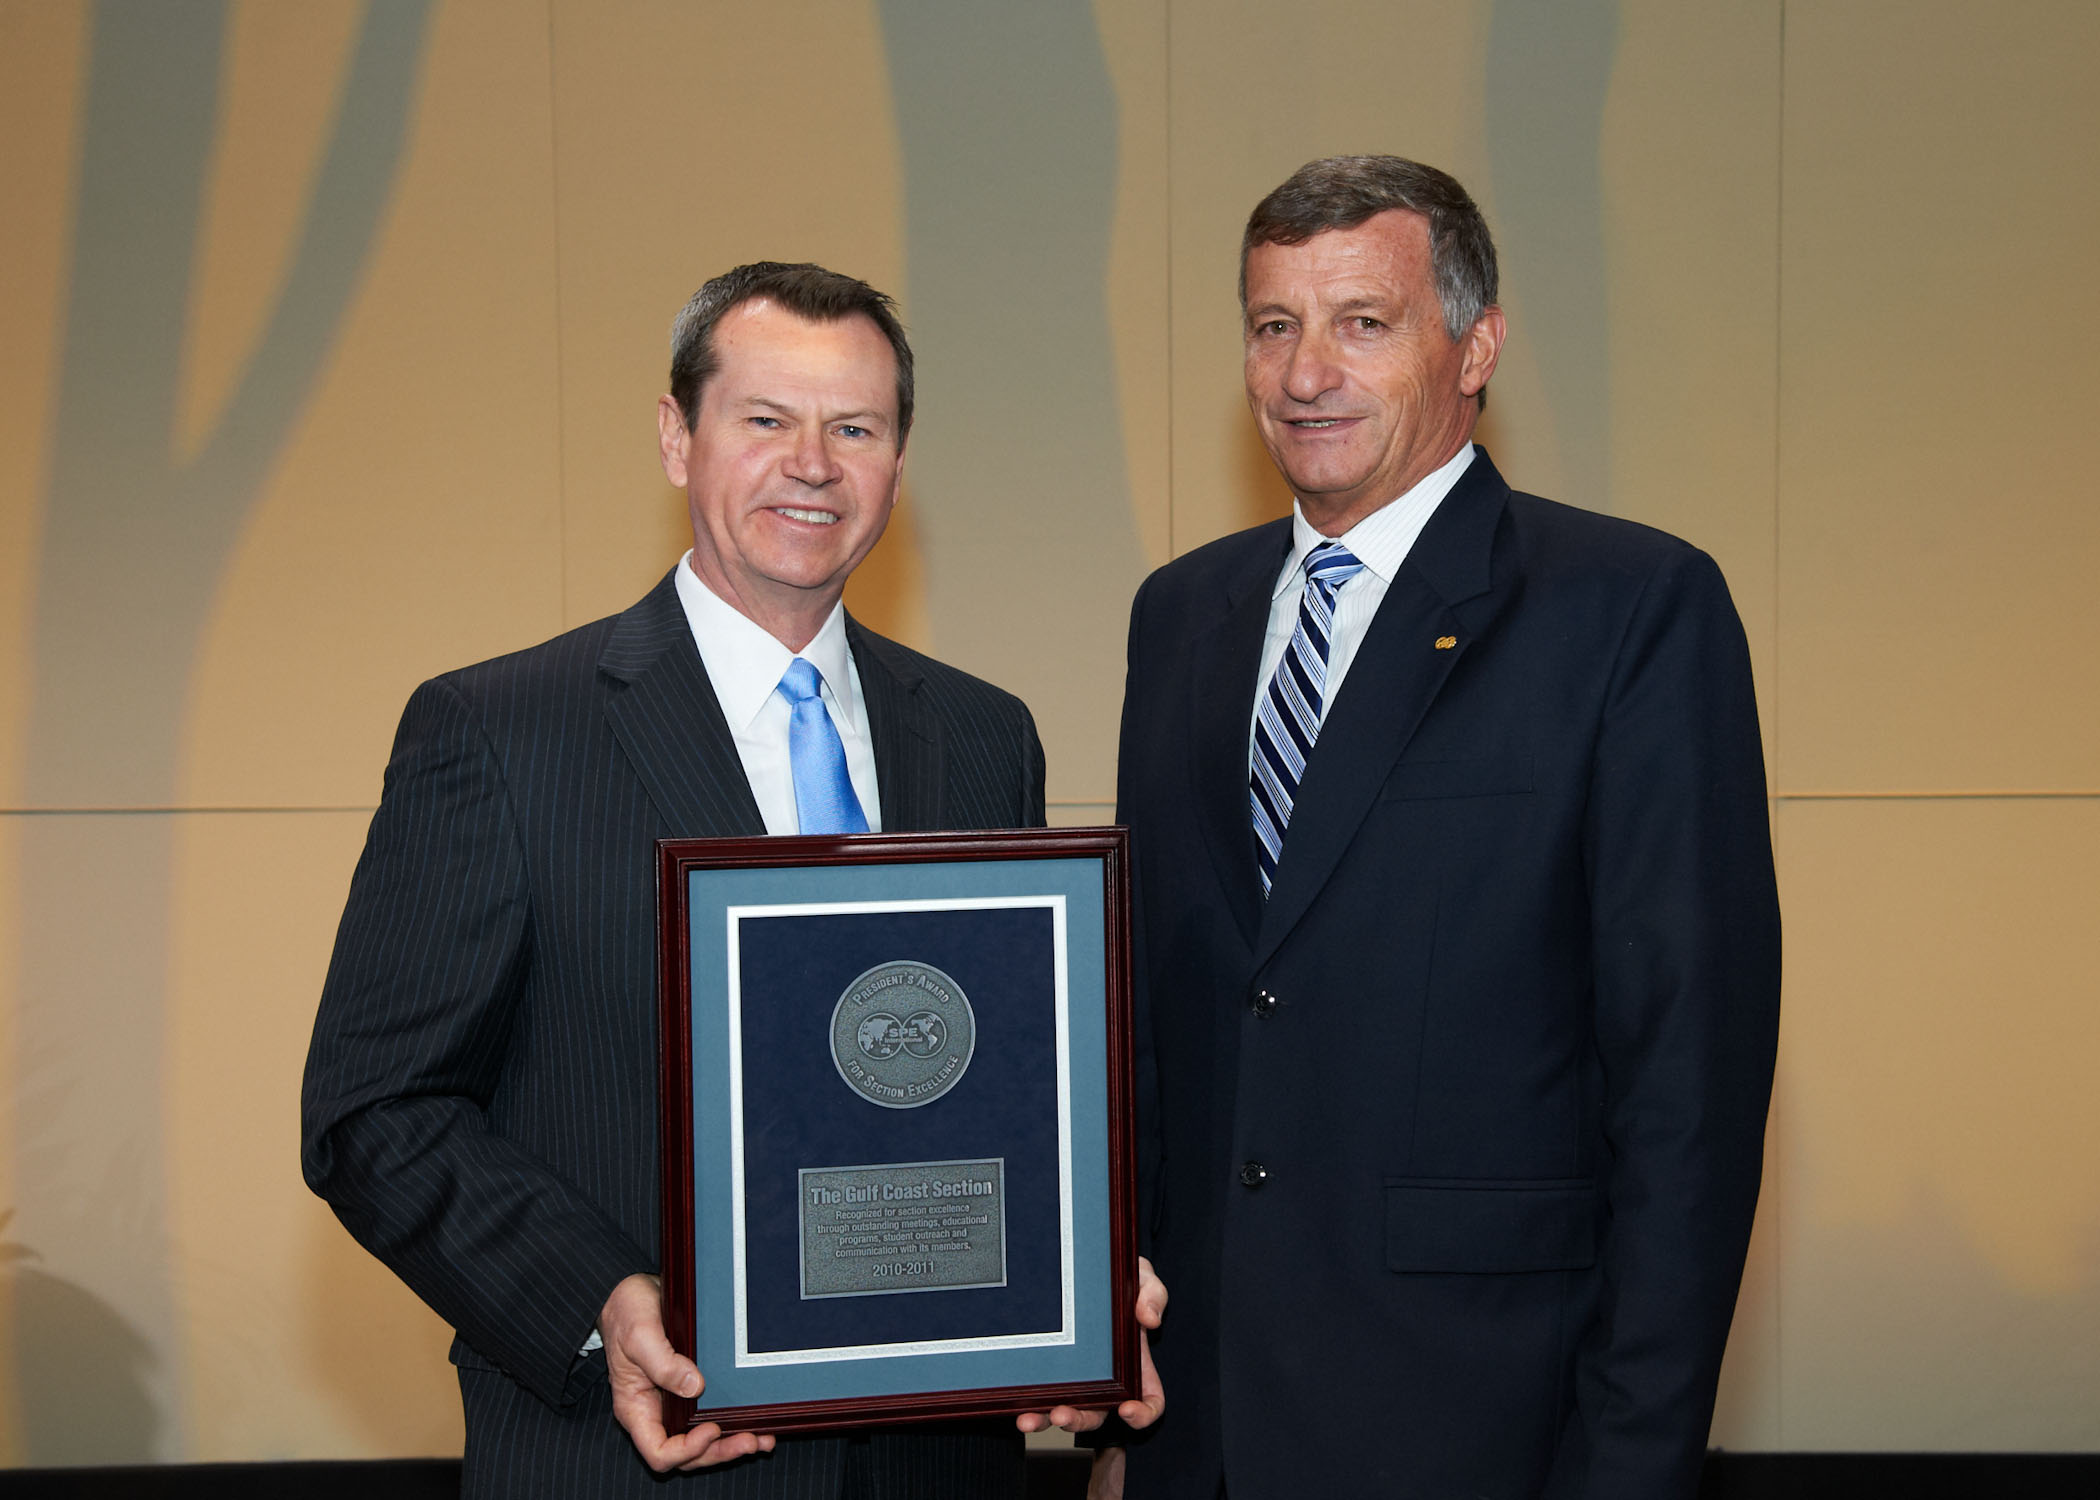 2011 SPE President's Award for Section Excellence to SPEGCS